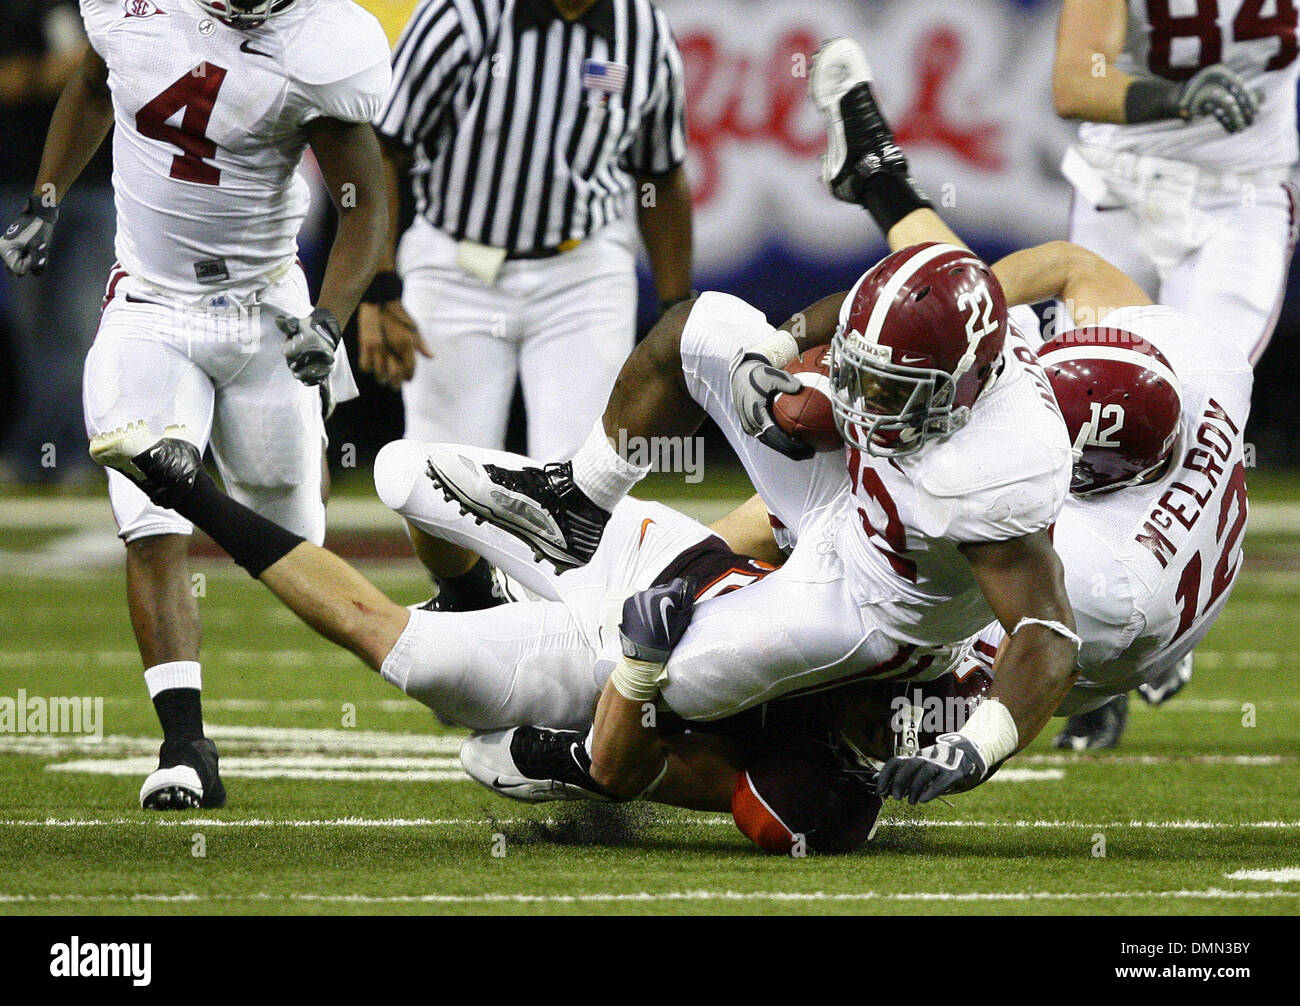 Sep 05, 2009 - Atlanta, Georgia, USA - NCAA Football - A Virginia Tech defender tackles Alabama's MARK INGRAM (22) during the second half of their season opener in the Georgia Dome. (Credit Image: © Josh D. Weiss/ZUMA Press) - Stock Image